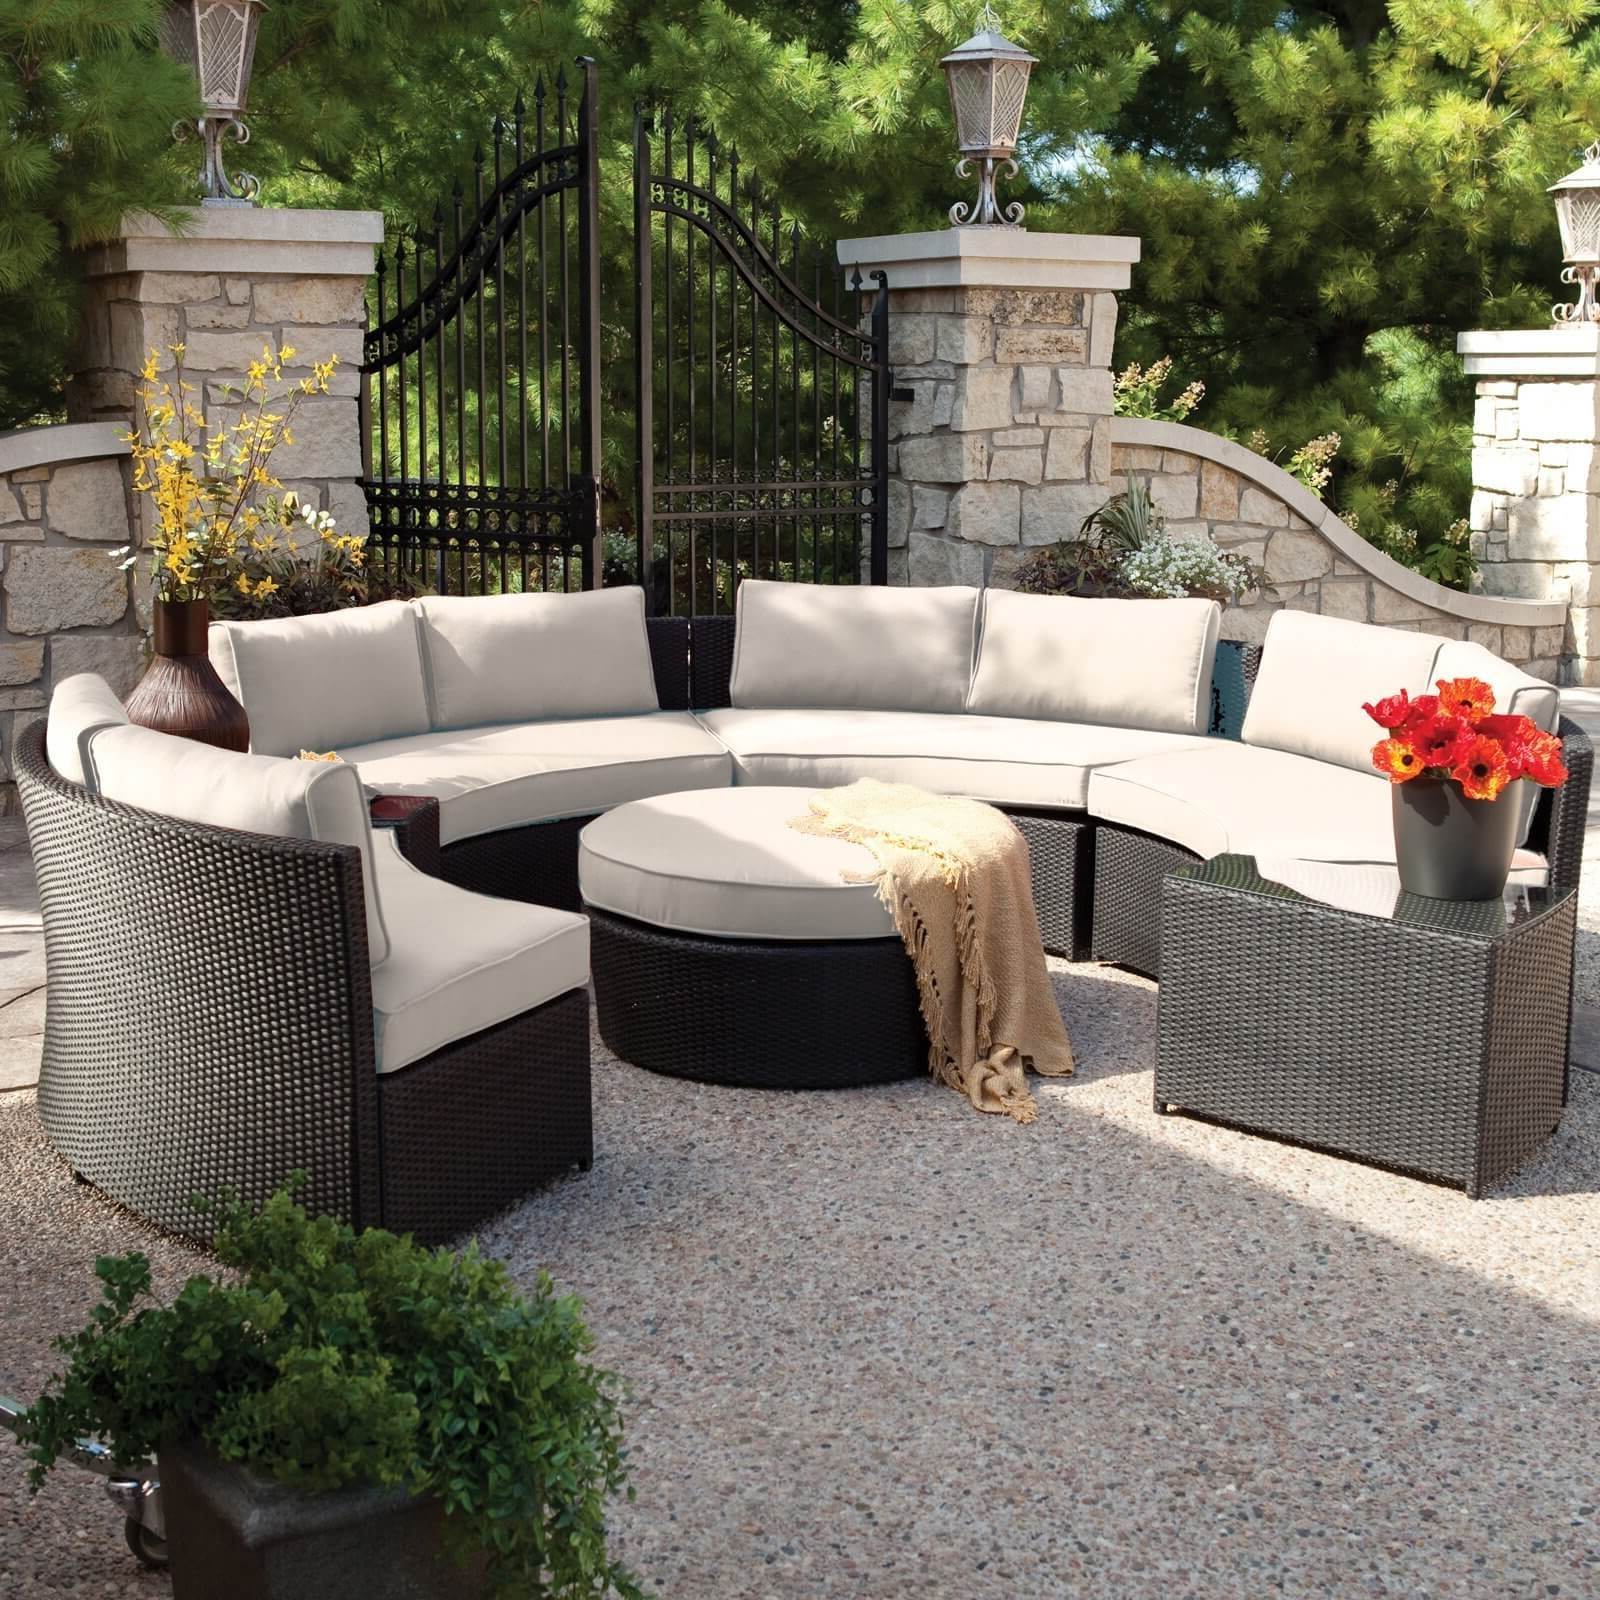 Most Popular Conversation Patio Sets With Outdoor Sectionals In Patio : Gray Veracruz Outdoor Sectional Sofa Outdoor Ideas Of White (View 3 of 15)